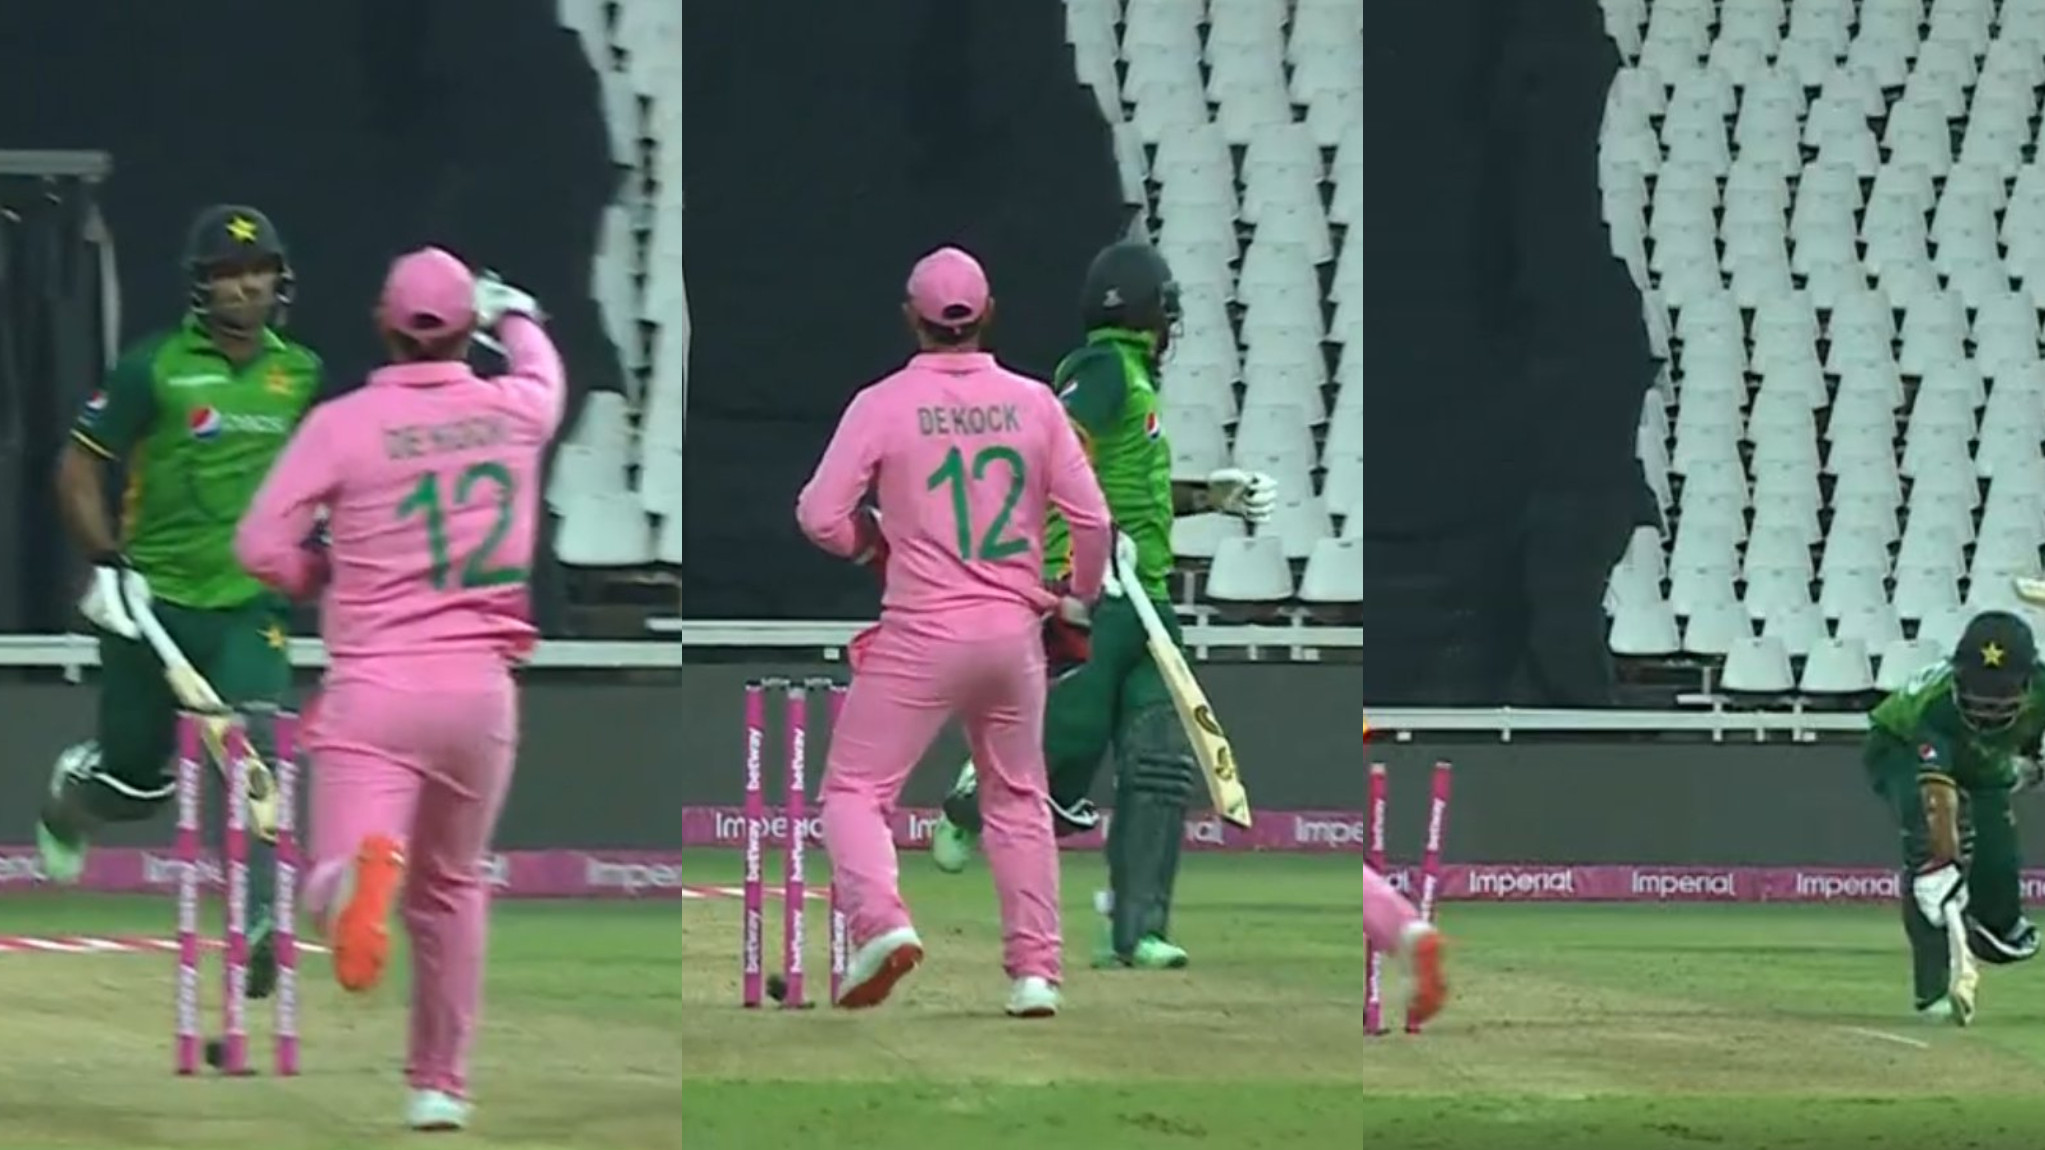 SA v PAK 2021: WATCH- Fakhar Zaman gets run out for 193 in second ODI after Quinton de Kock's fake fielding